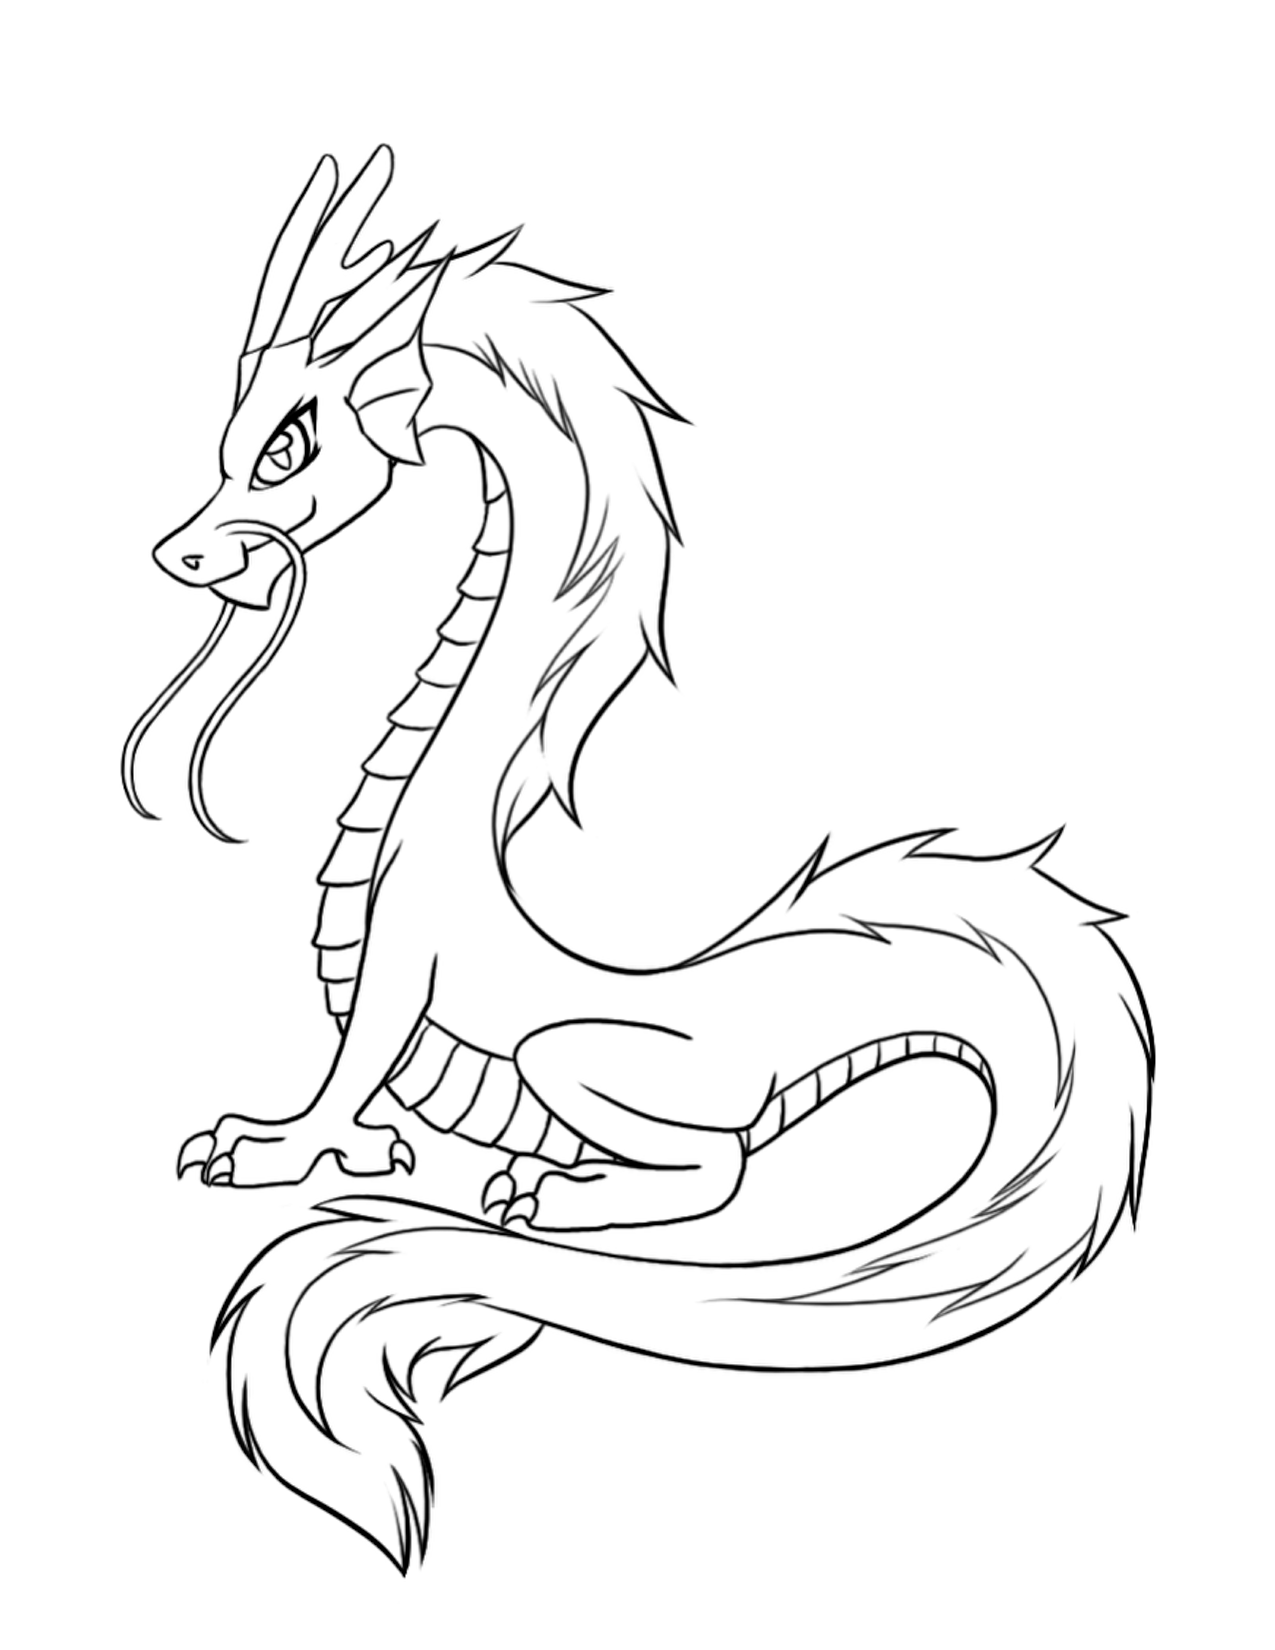 1275x1650 Chinese Dragon Coloring Pages To Download And Print For Free